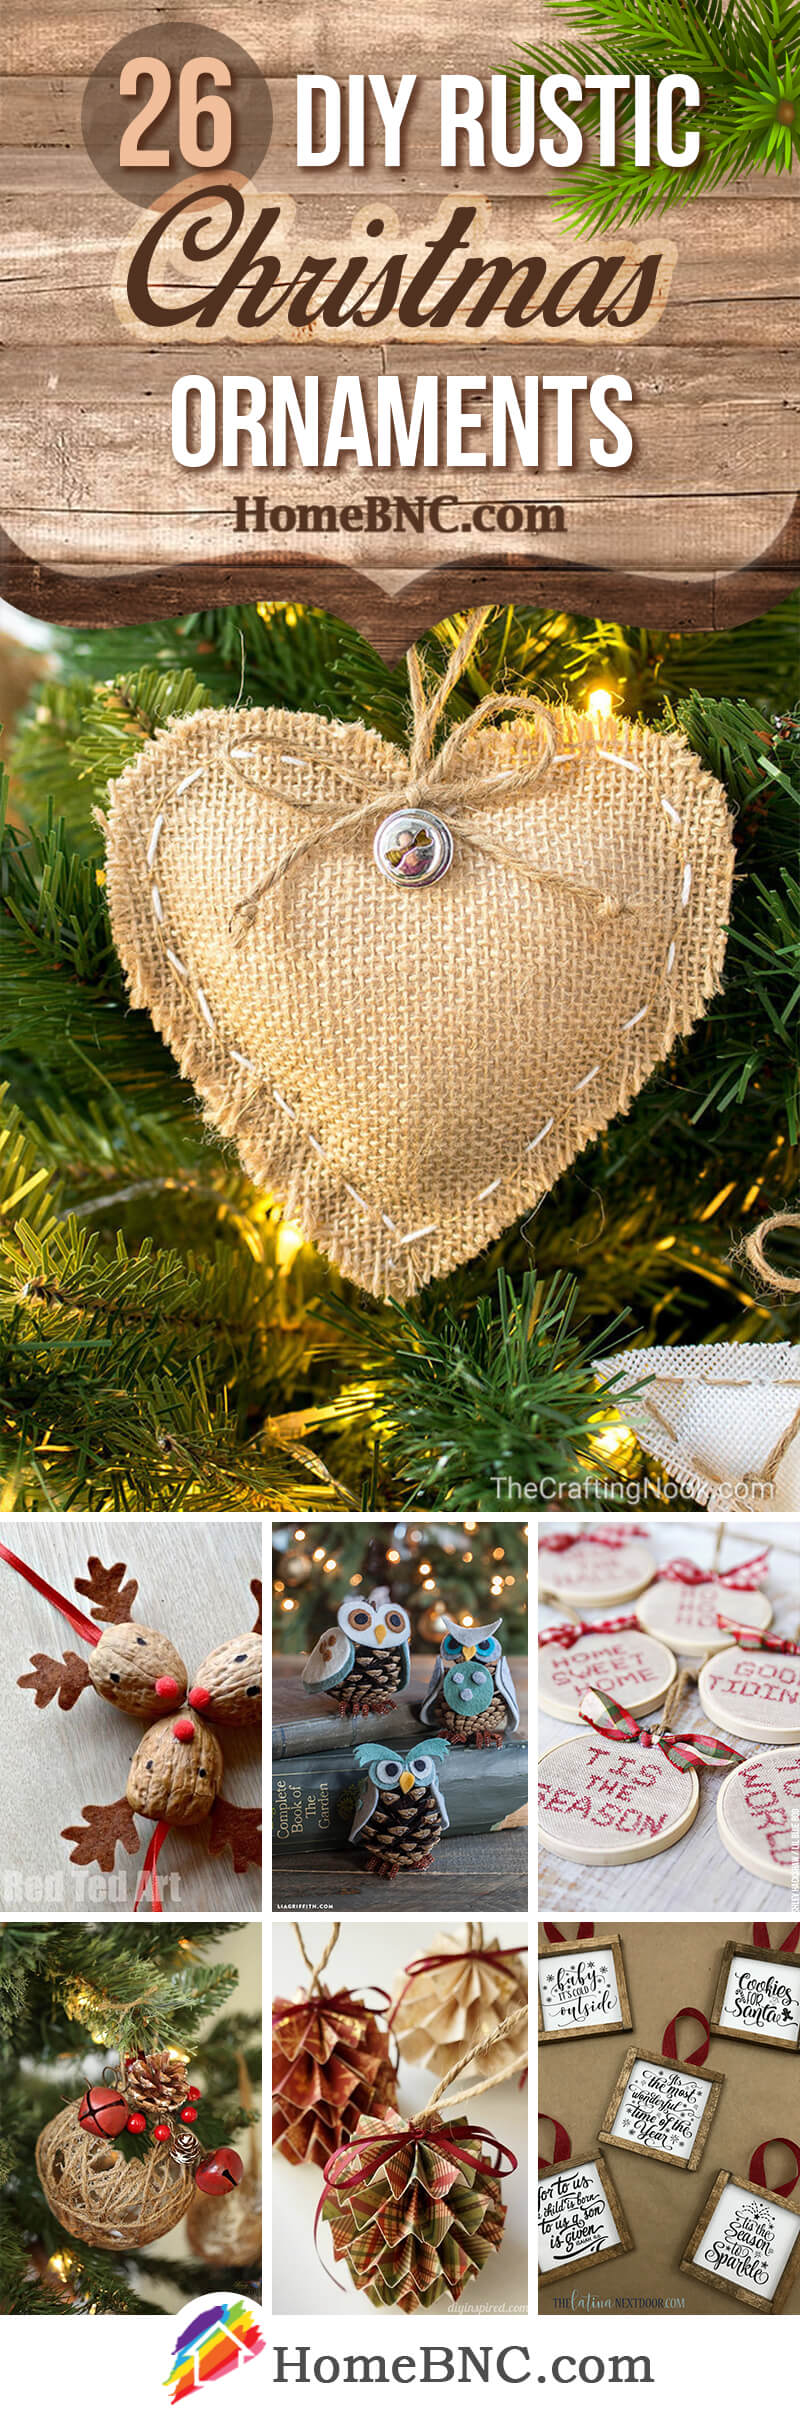 26 Best Rustic Diy Christmas Ornament Ideas And Designs For 2020